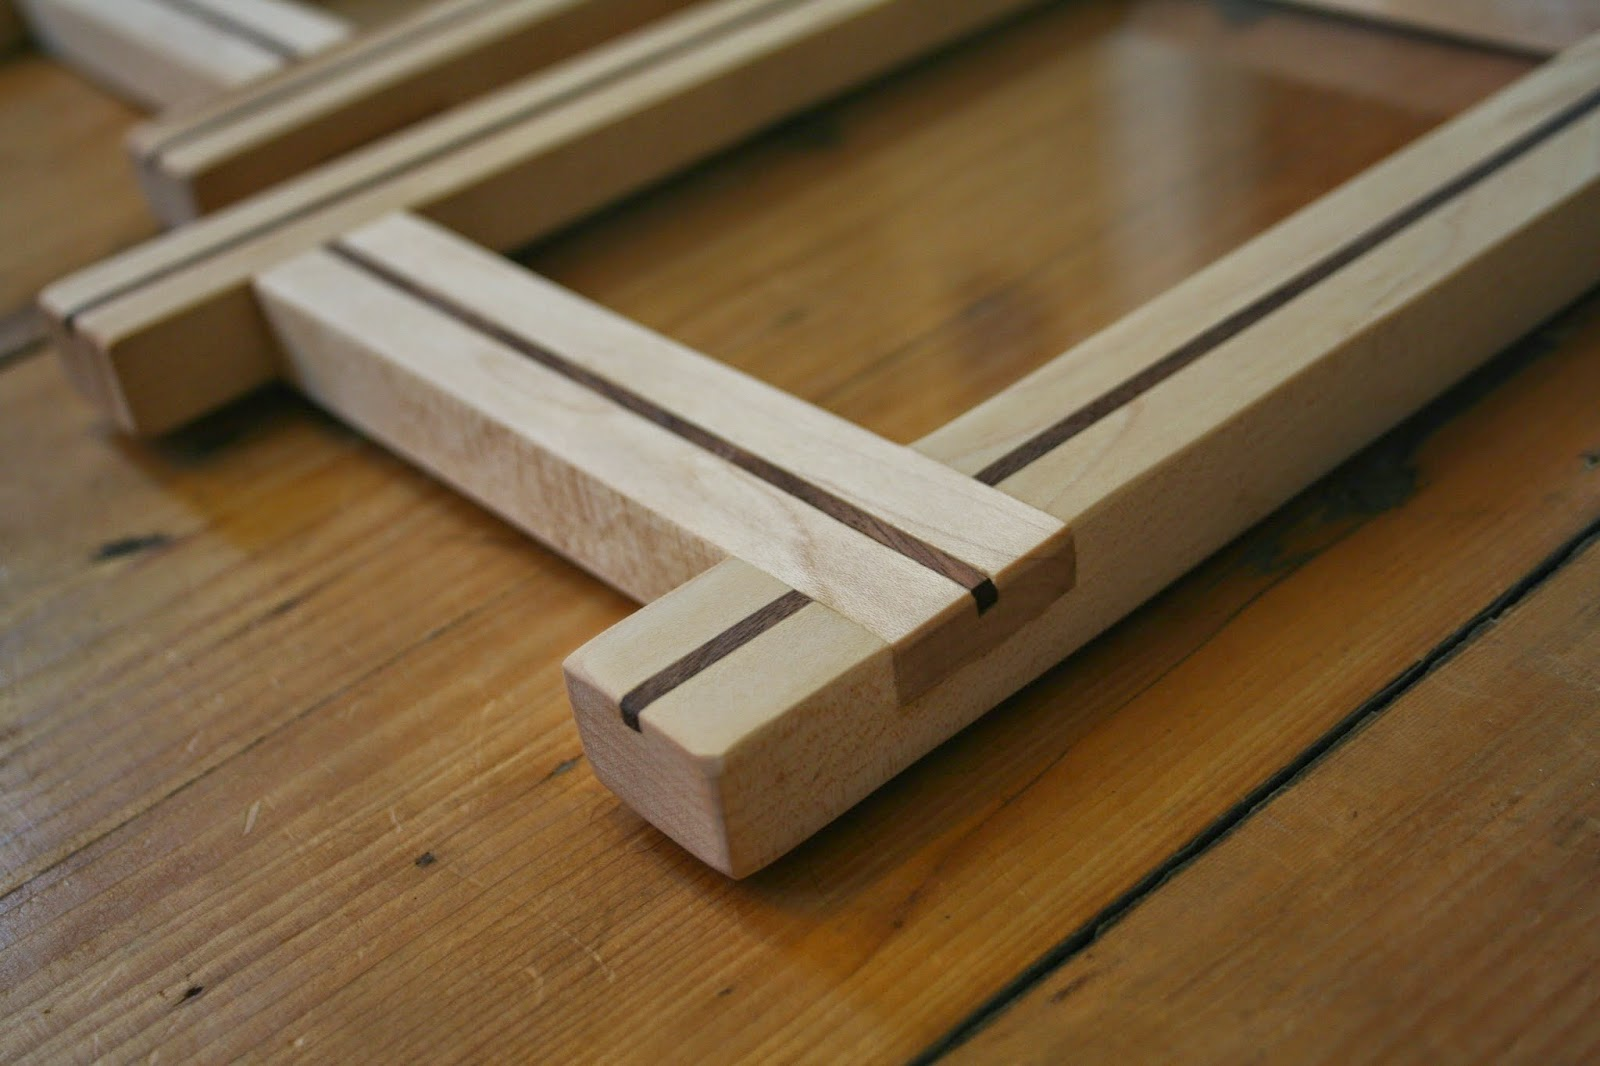 Sugar maple picture frames vaughan woodworks i hand cut the dovetail lap joints for these frames using a japanese dovetail saw and chisel for sale 140 update both are sold jeuxipadfo Image collections